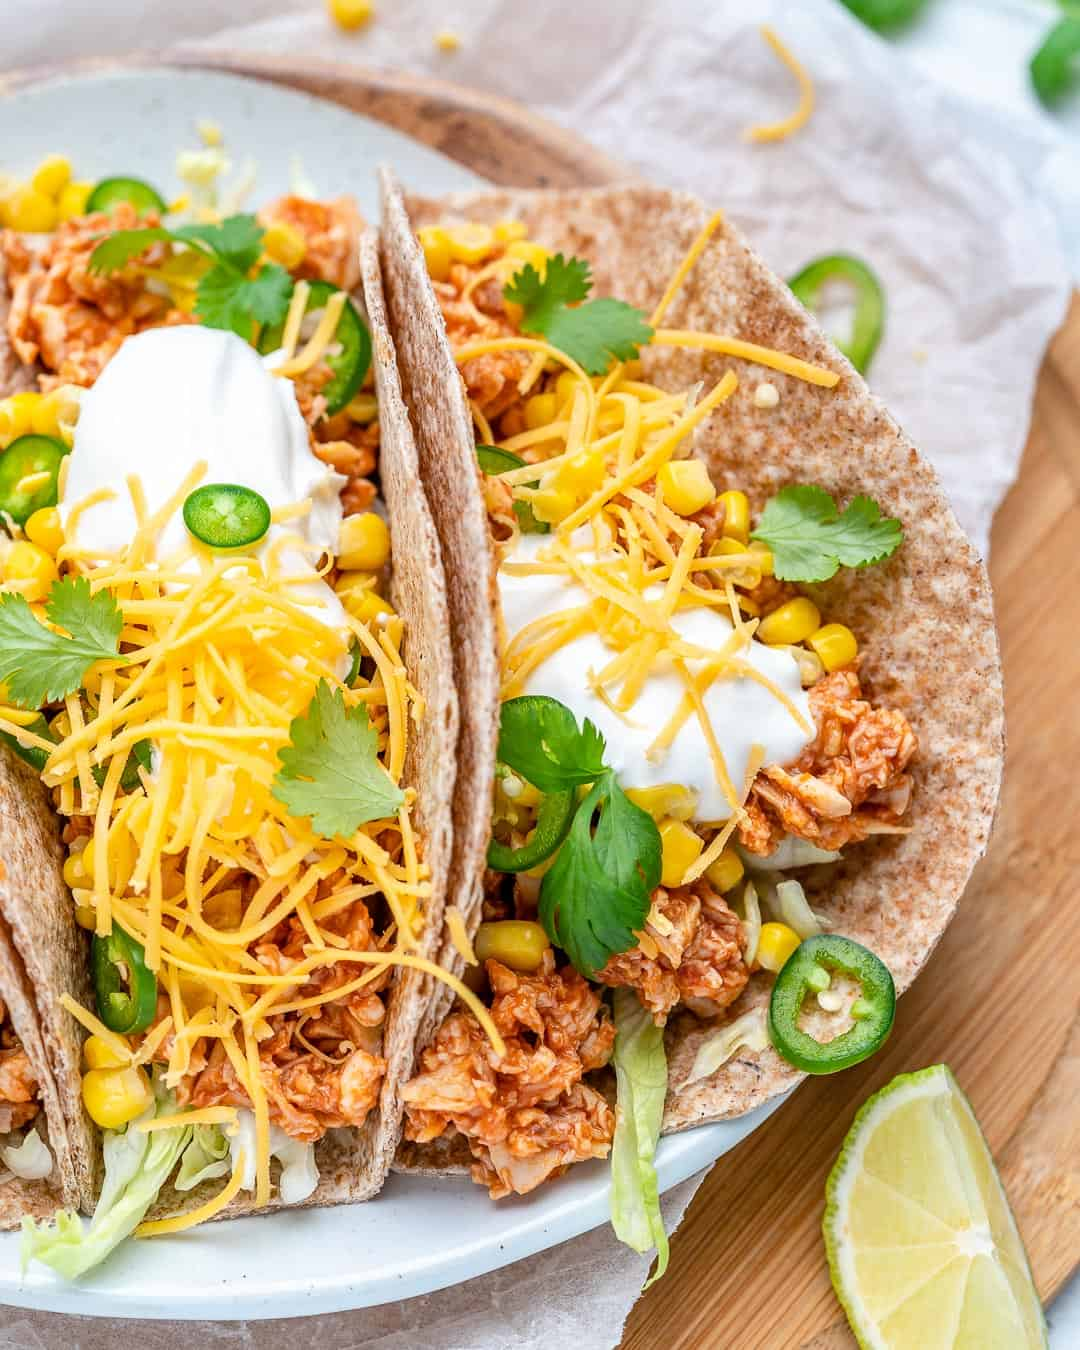 buffalo chicken tacos on plate with lime